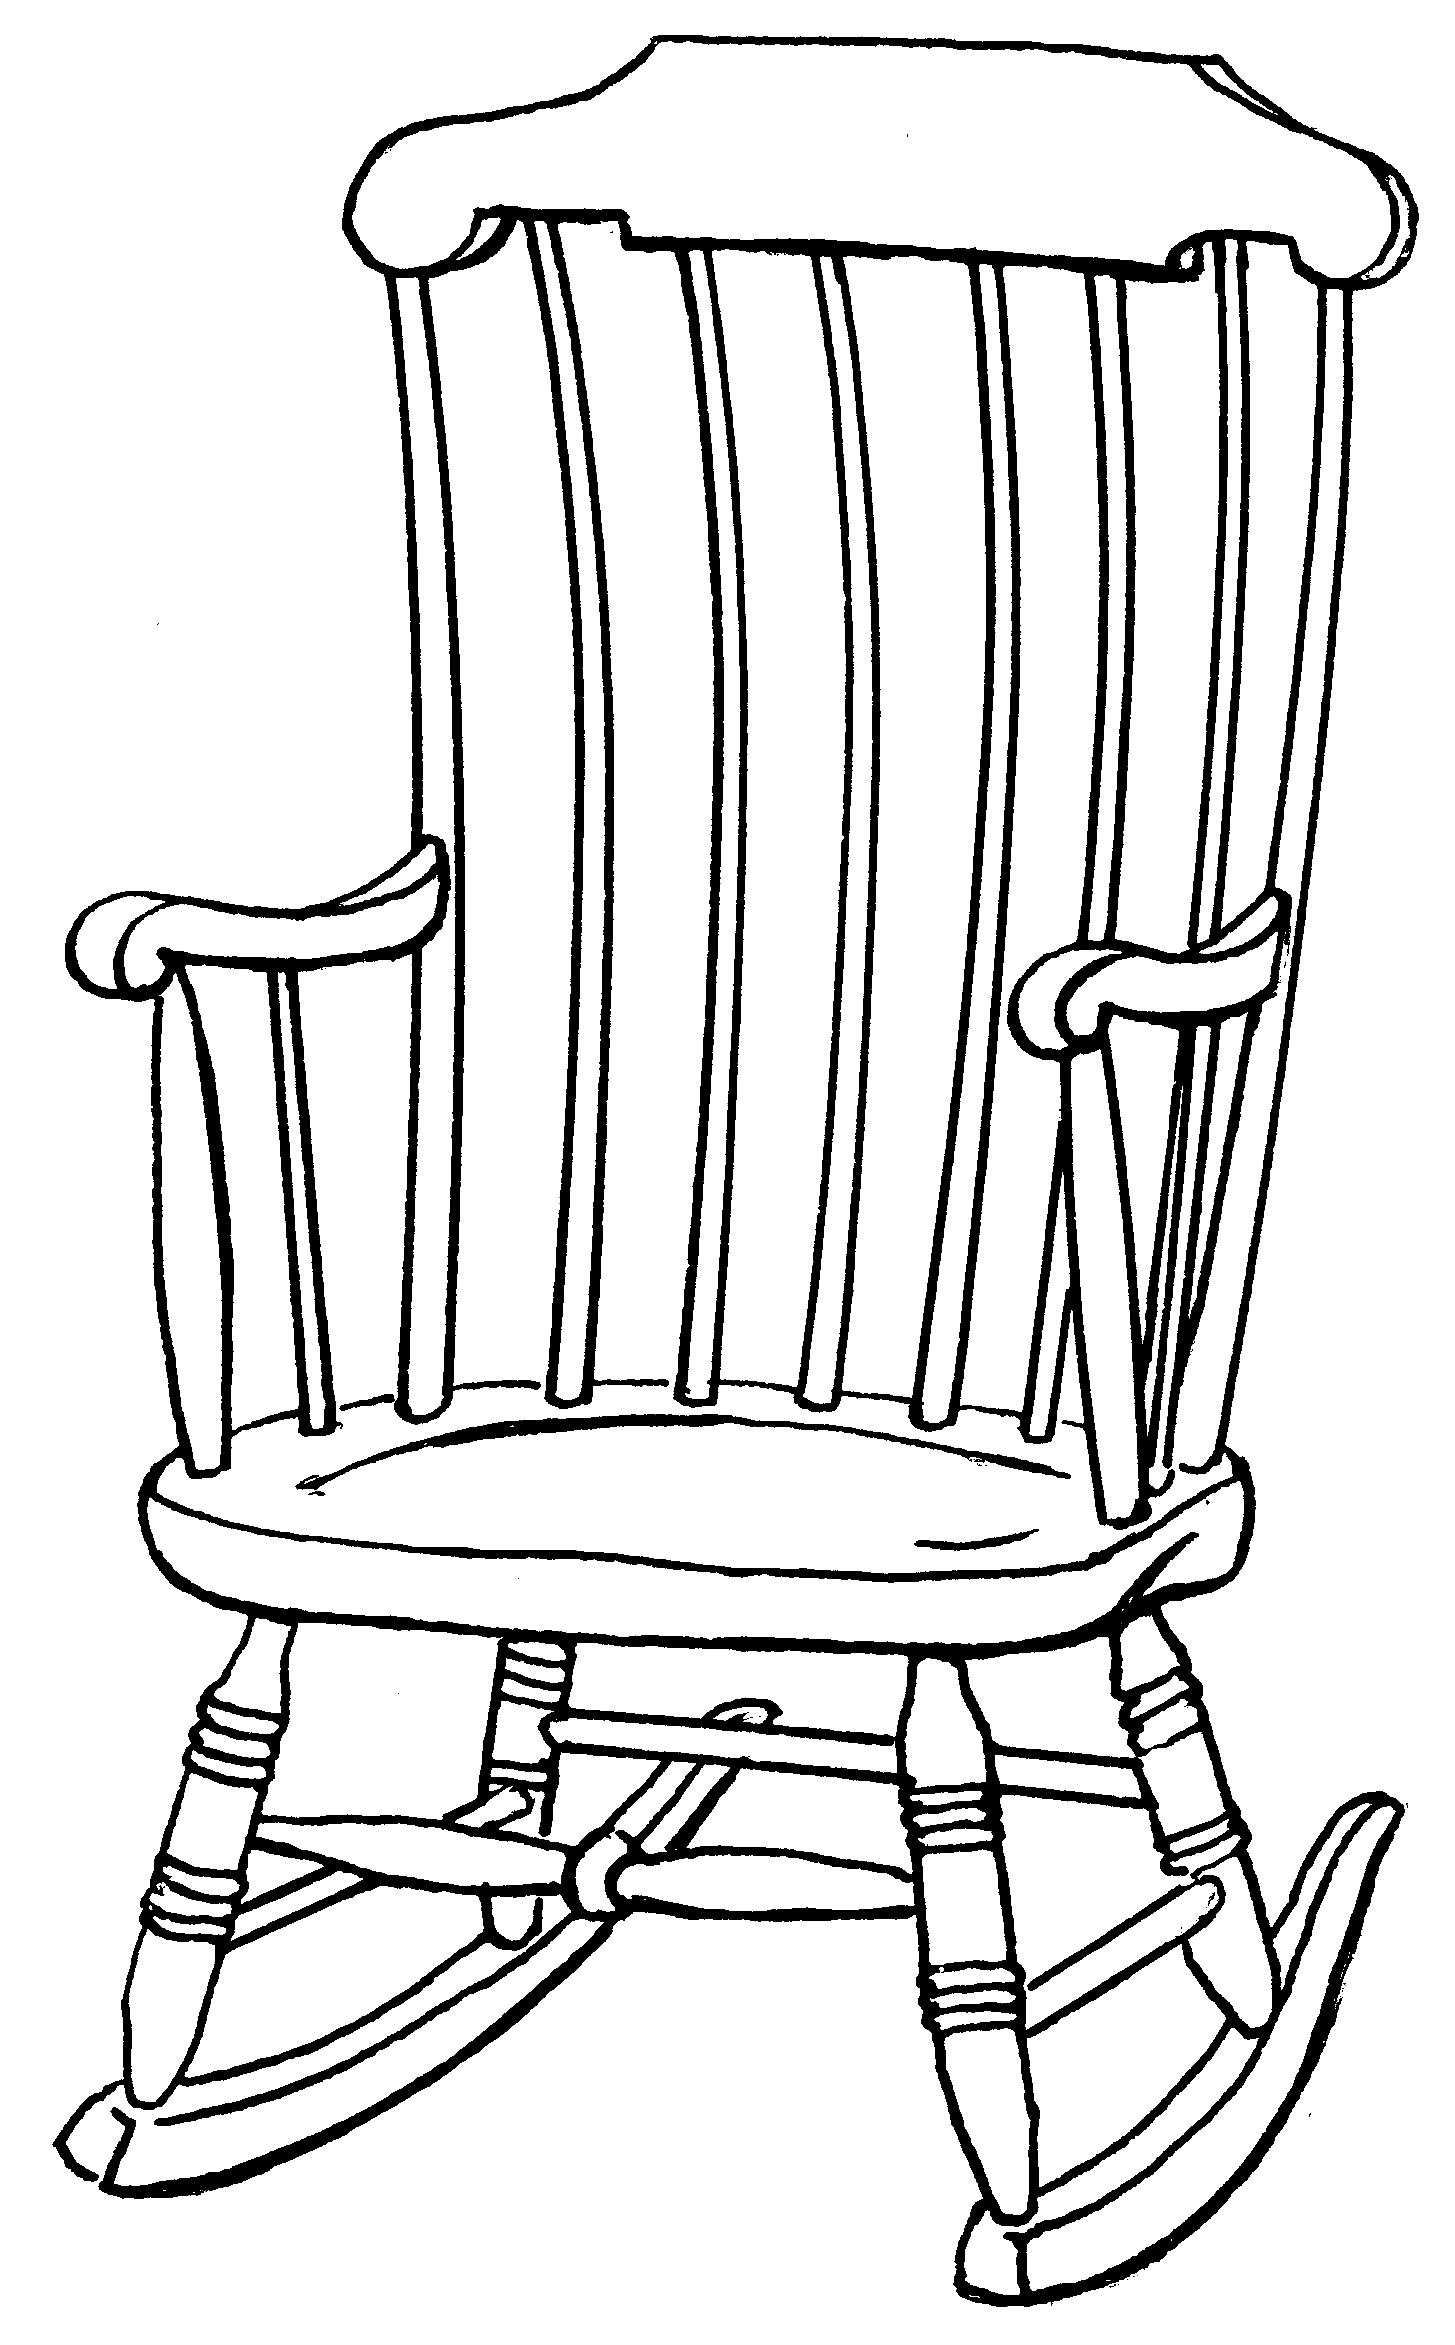 Outline drawings on chair clipart best